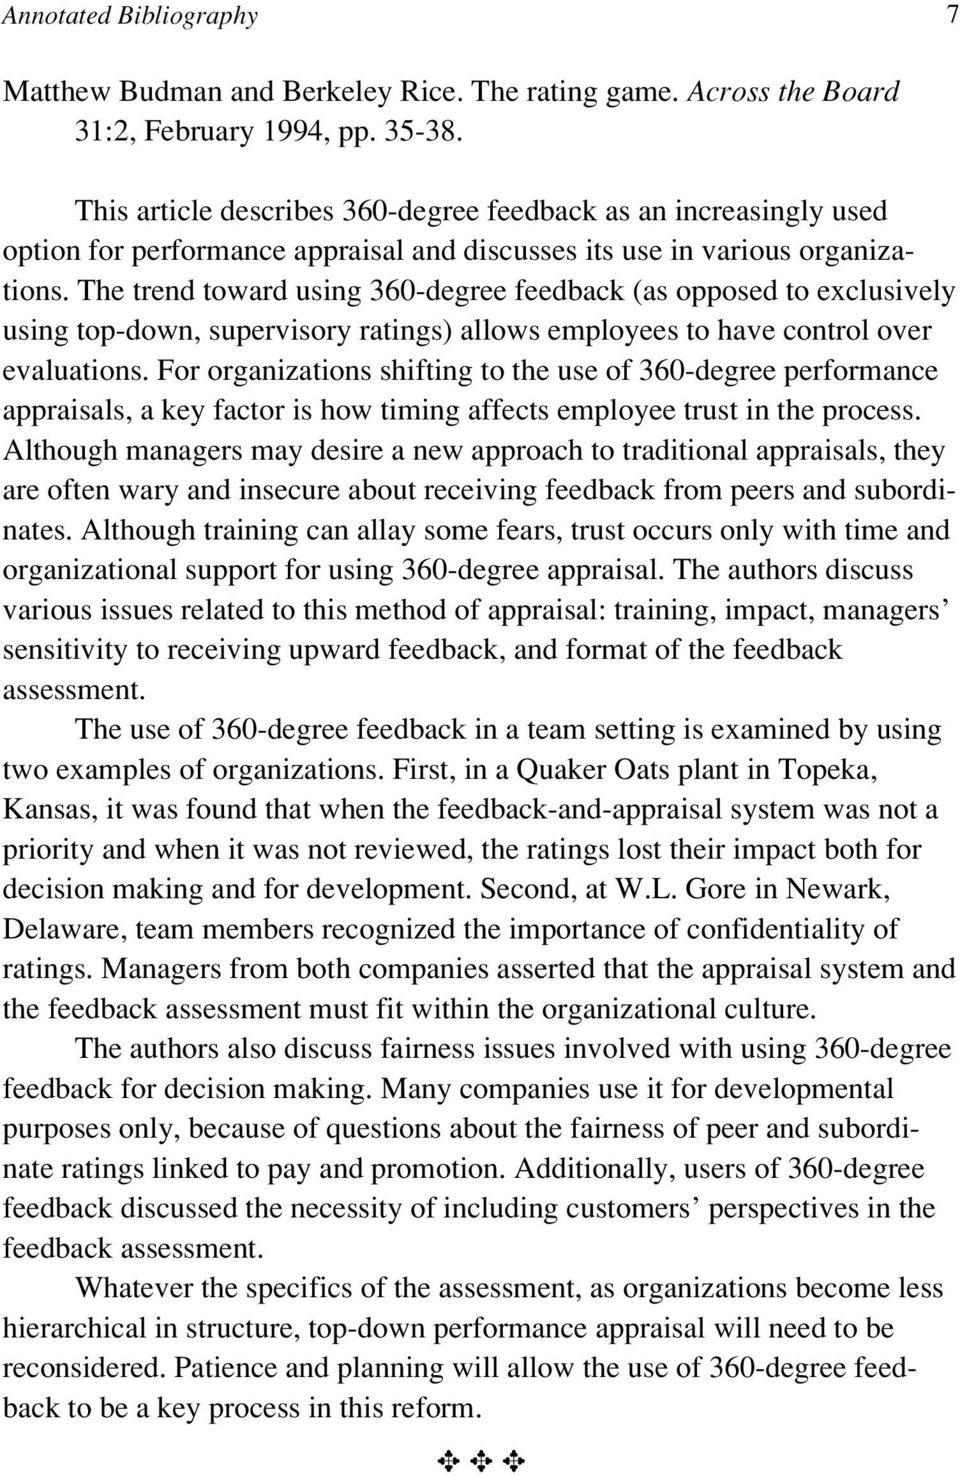 The trend toward using 360-degree feedback (as opposed to exclusively using top-down, supervisory ratings) allows employees to have control over evaluations.